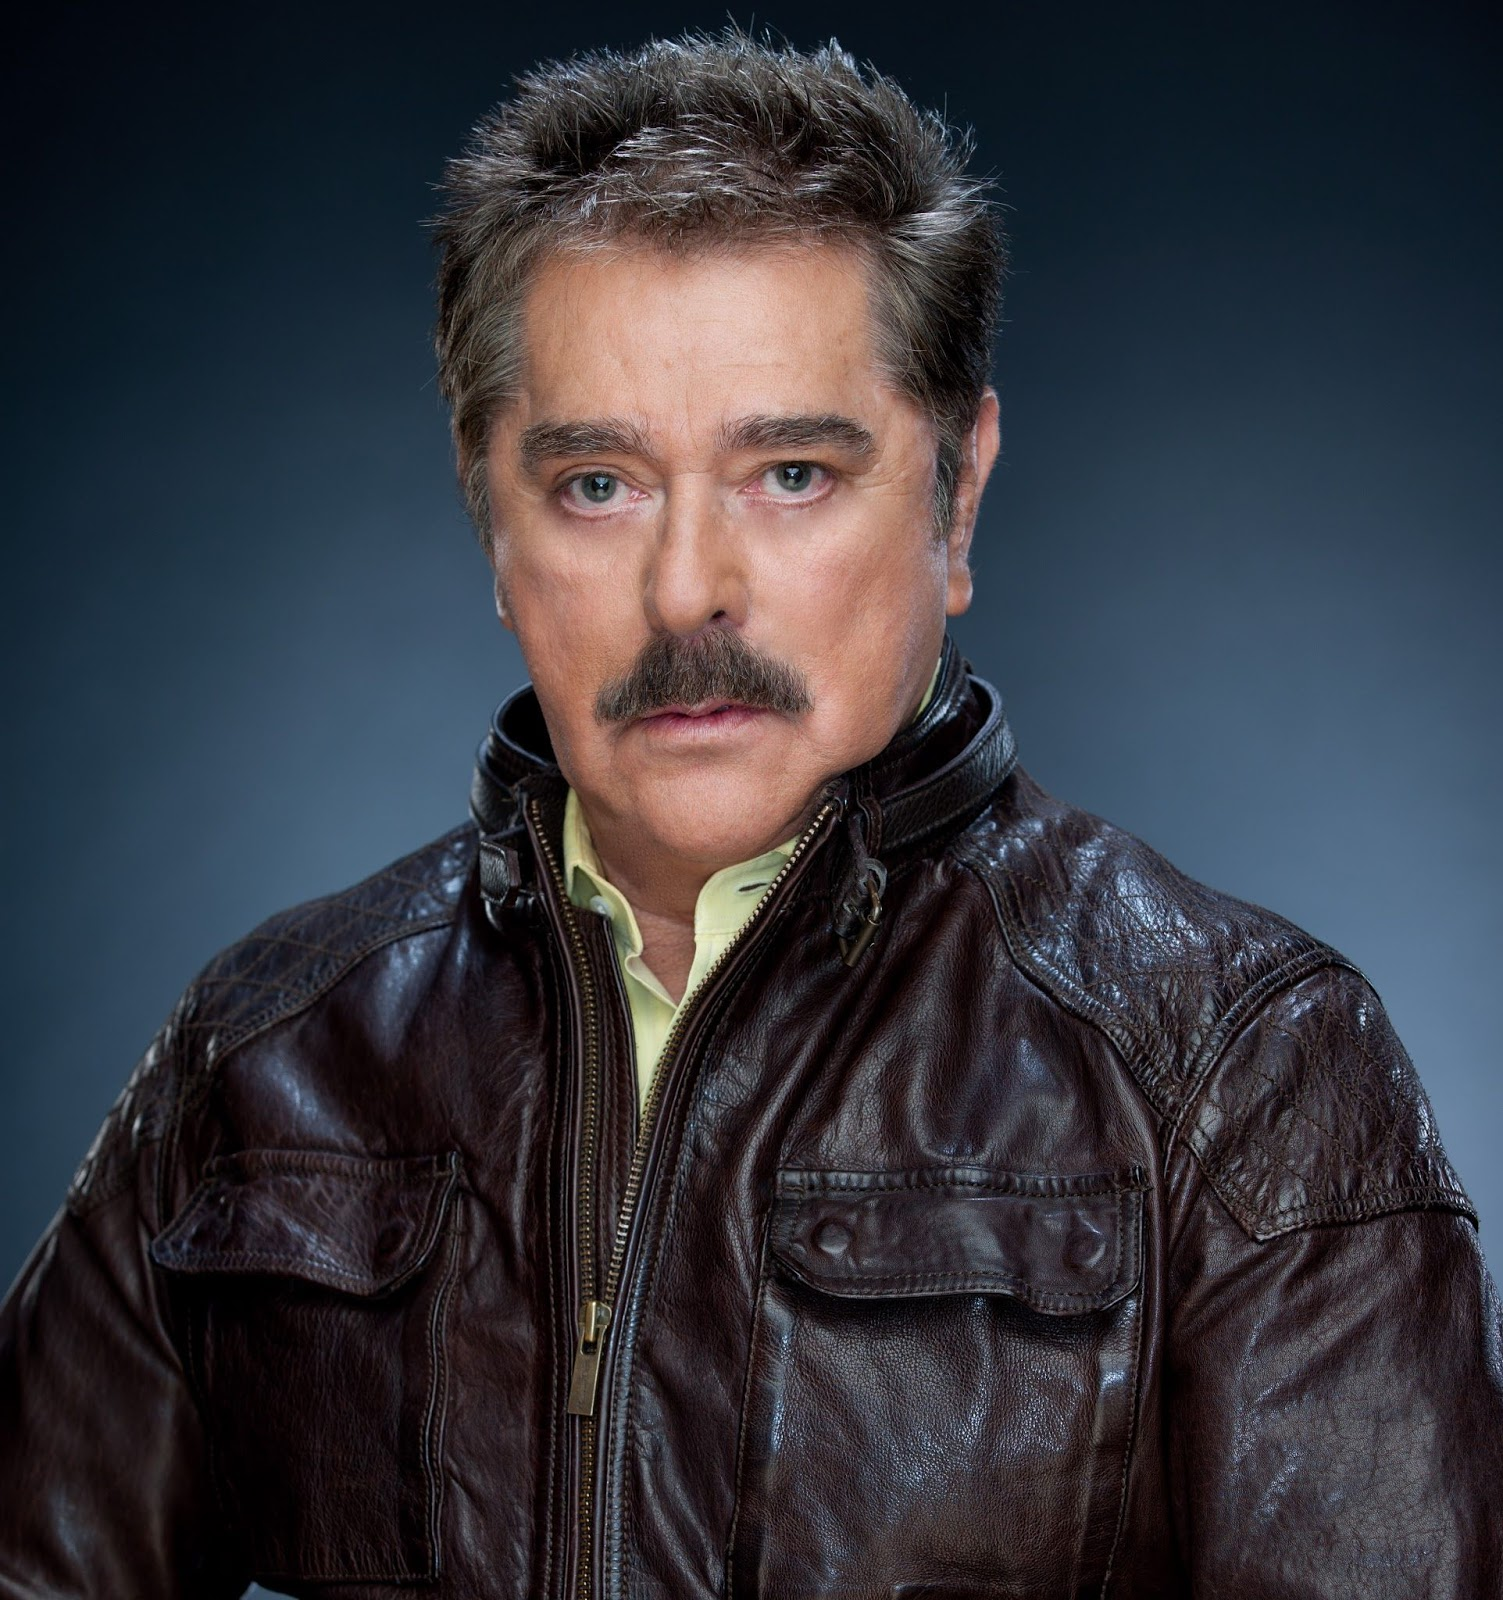 Fallece el actor Raymundo Capetillo a causa de Covid-19